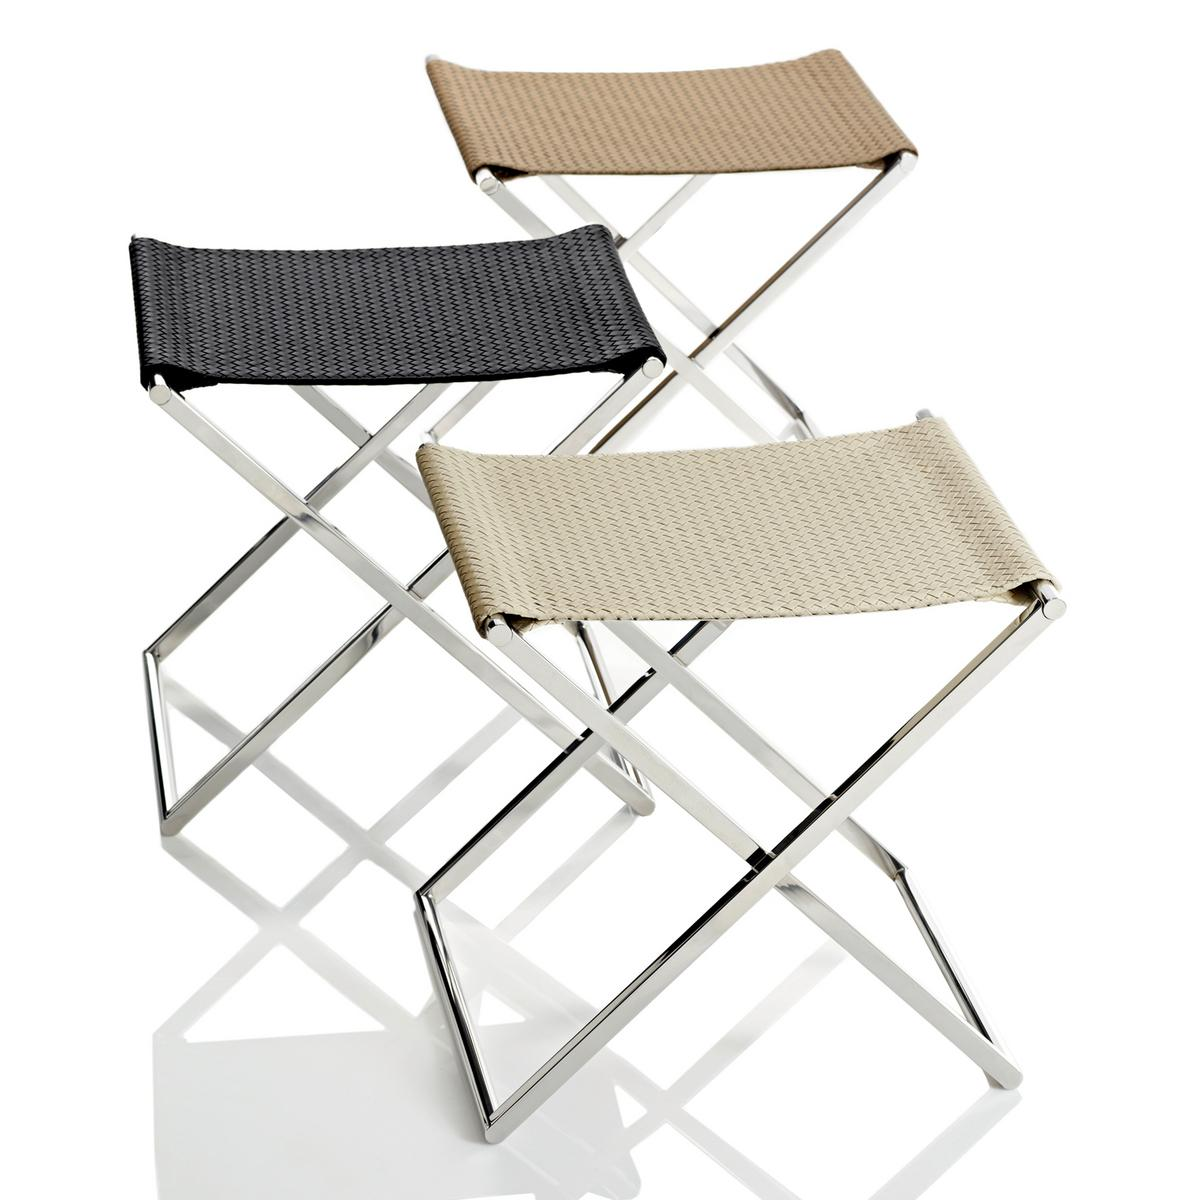 Riviere Milano Luggage Racks Folding Stools